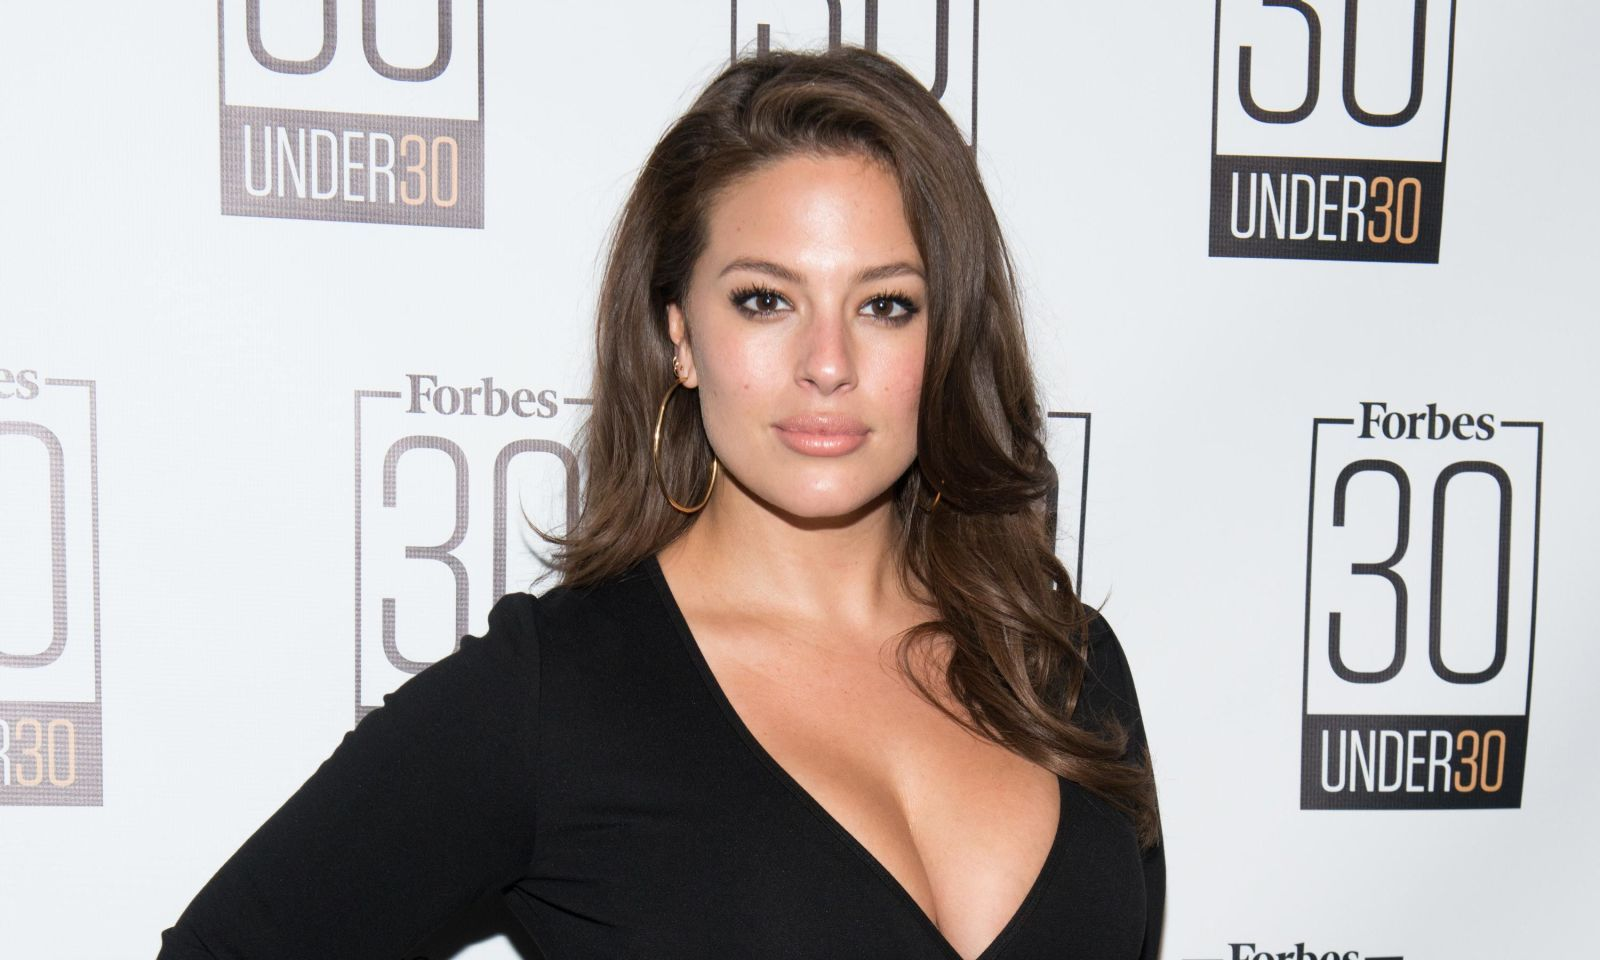 Model Ashley Graham Will Slay in the Sports Illustrated